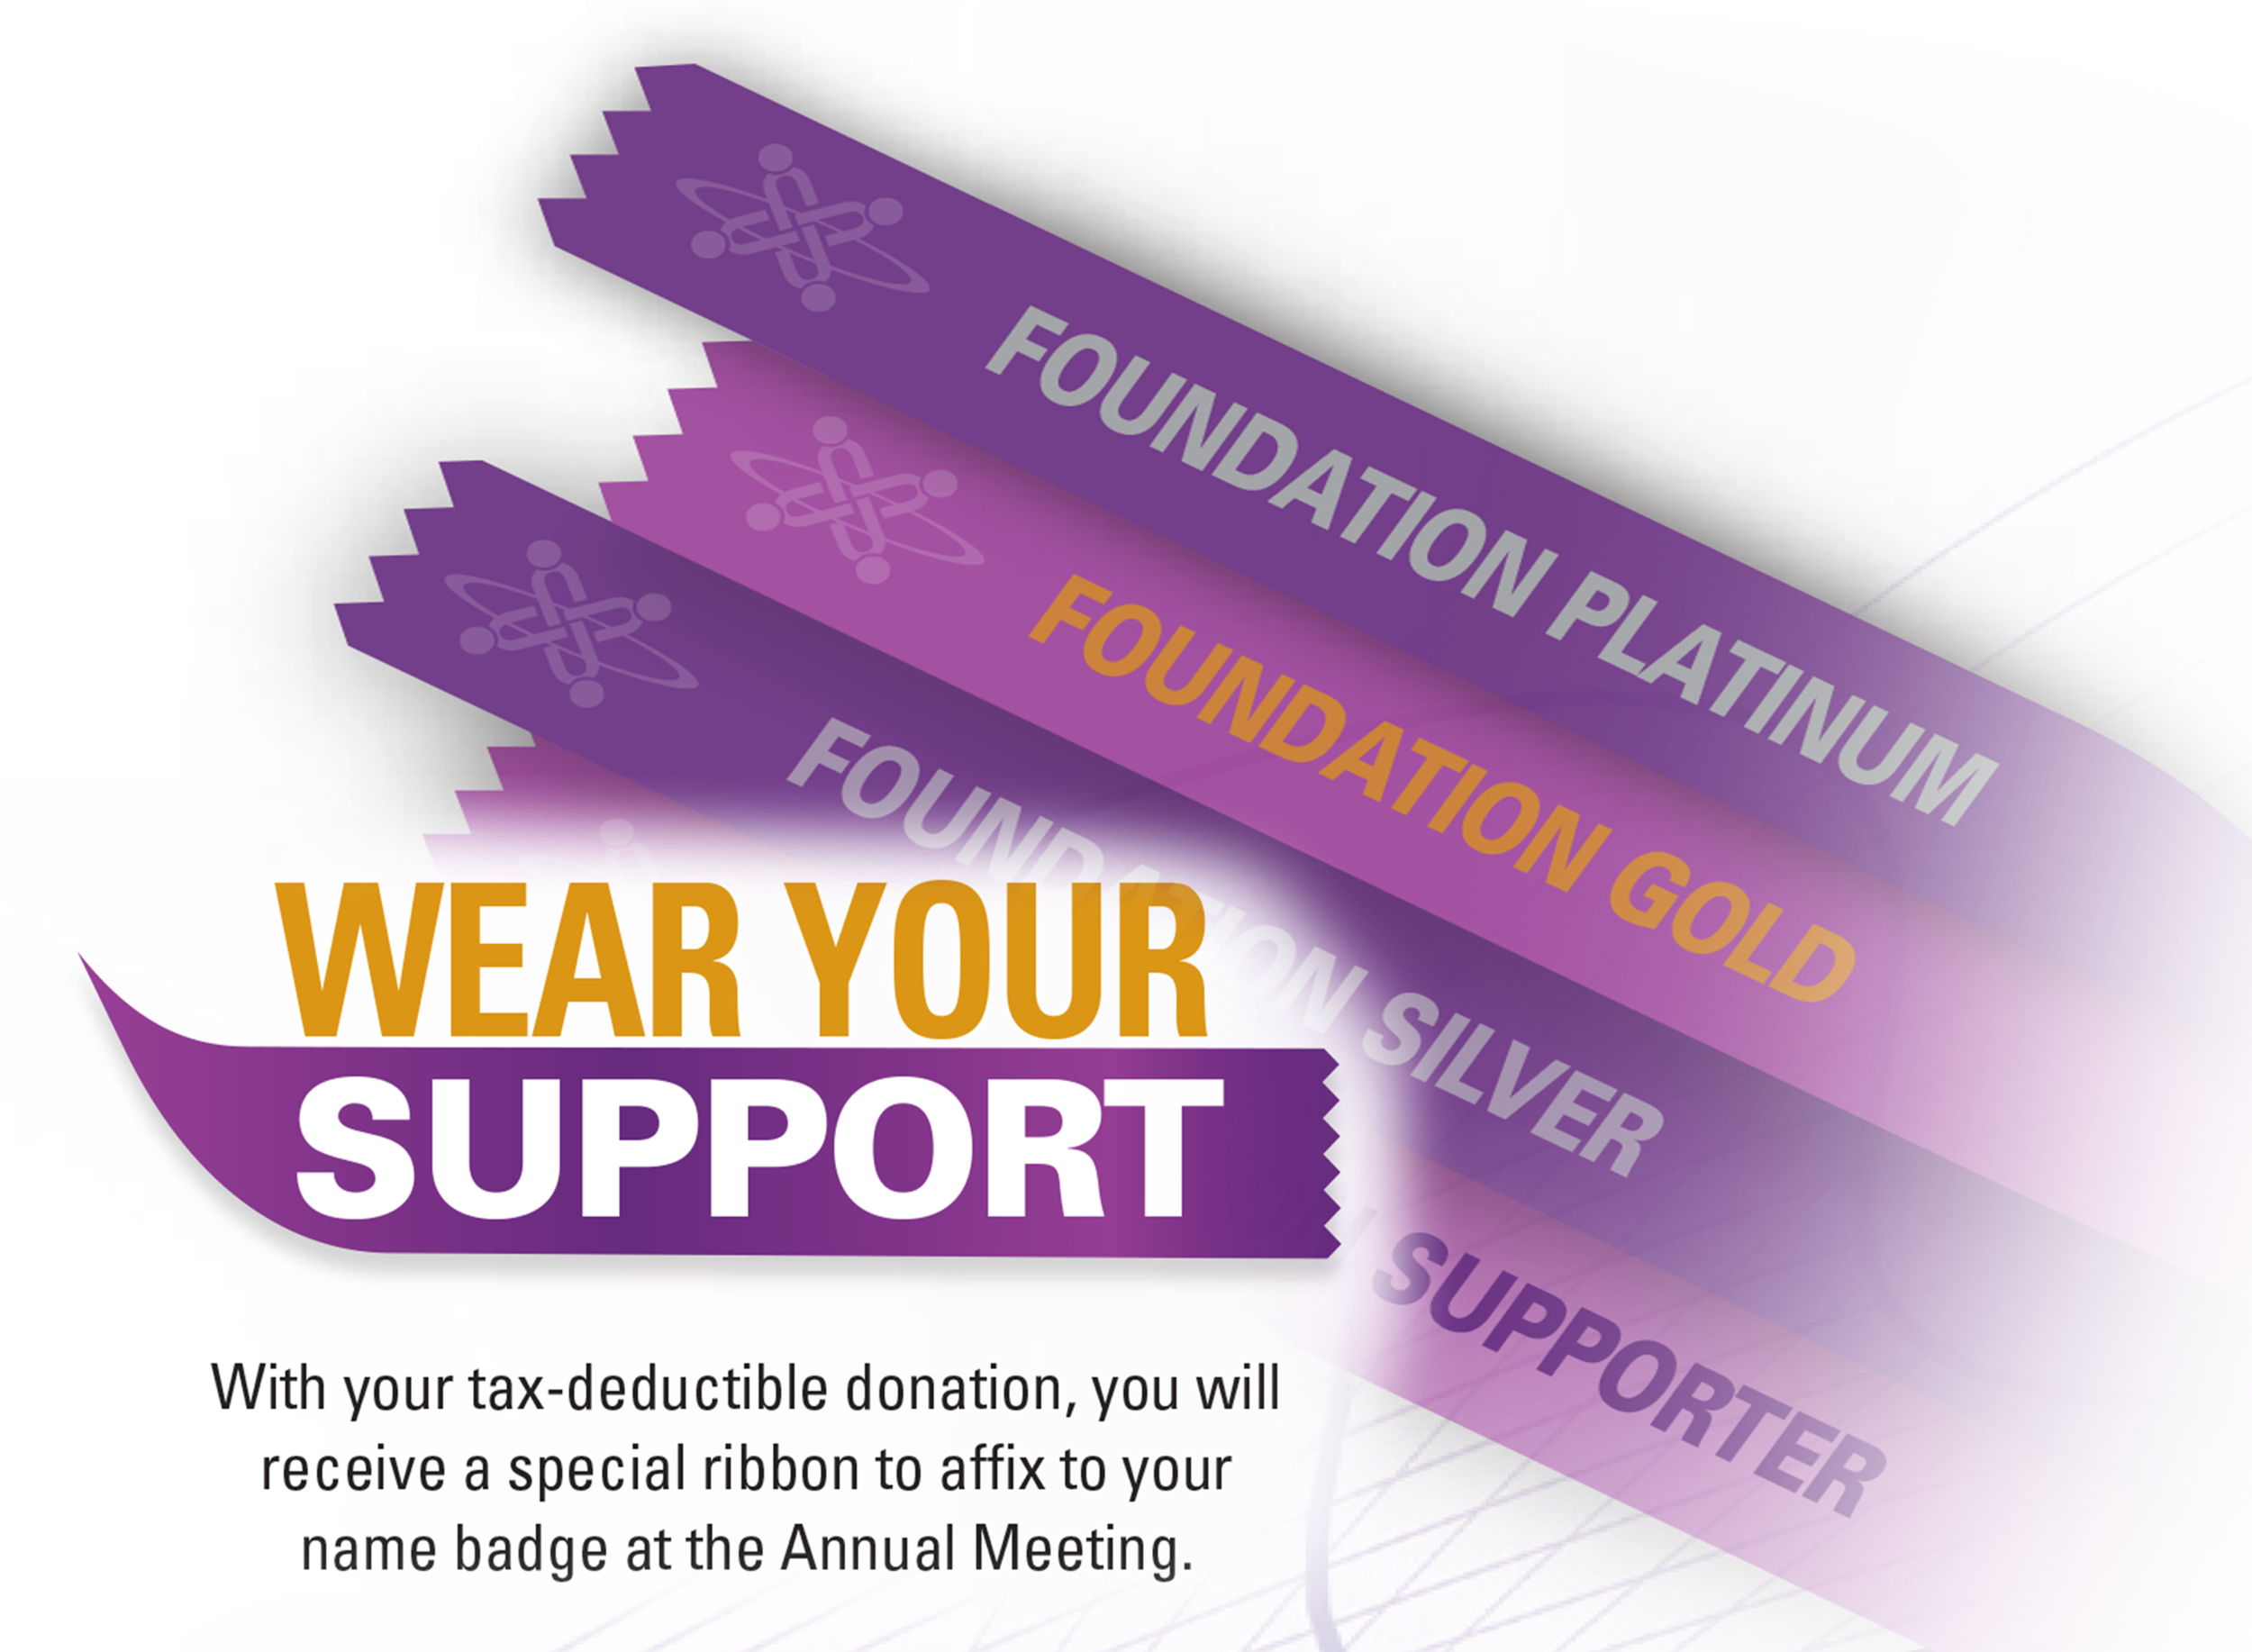 When you make a donation of $100 or more to USCAP's Foundation, you will receive a ribbon to affix to your name badge at USCAP's Annual Meeting. -